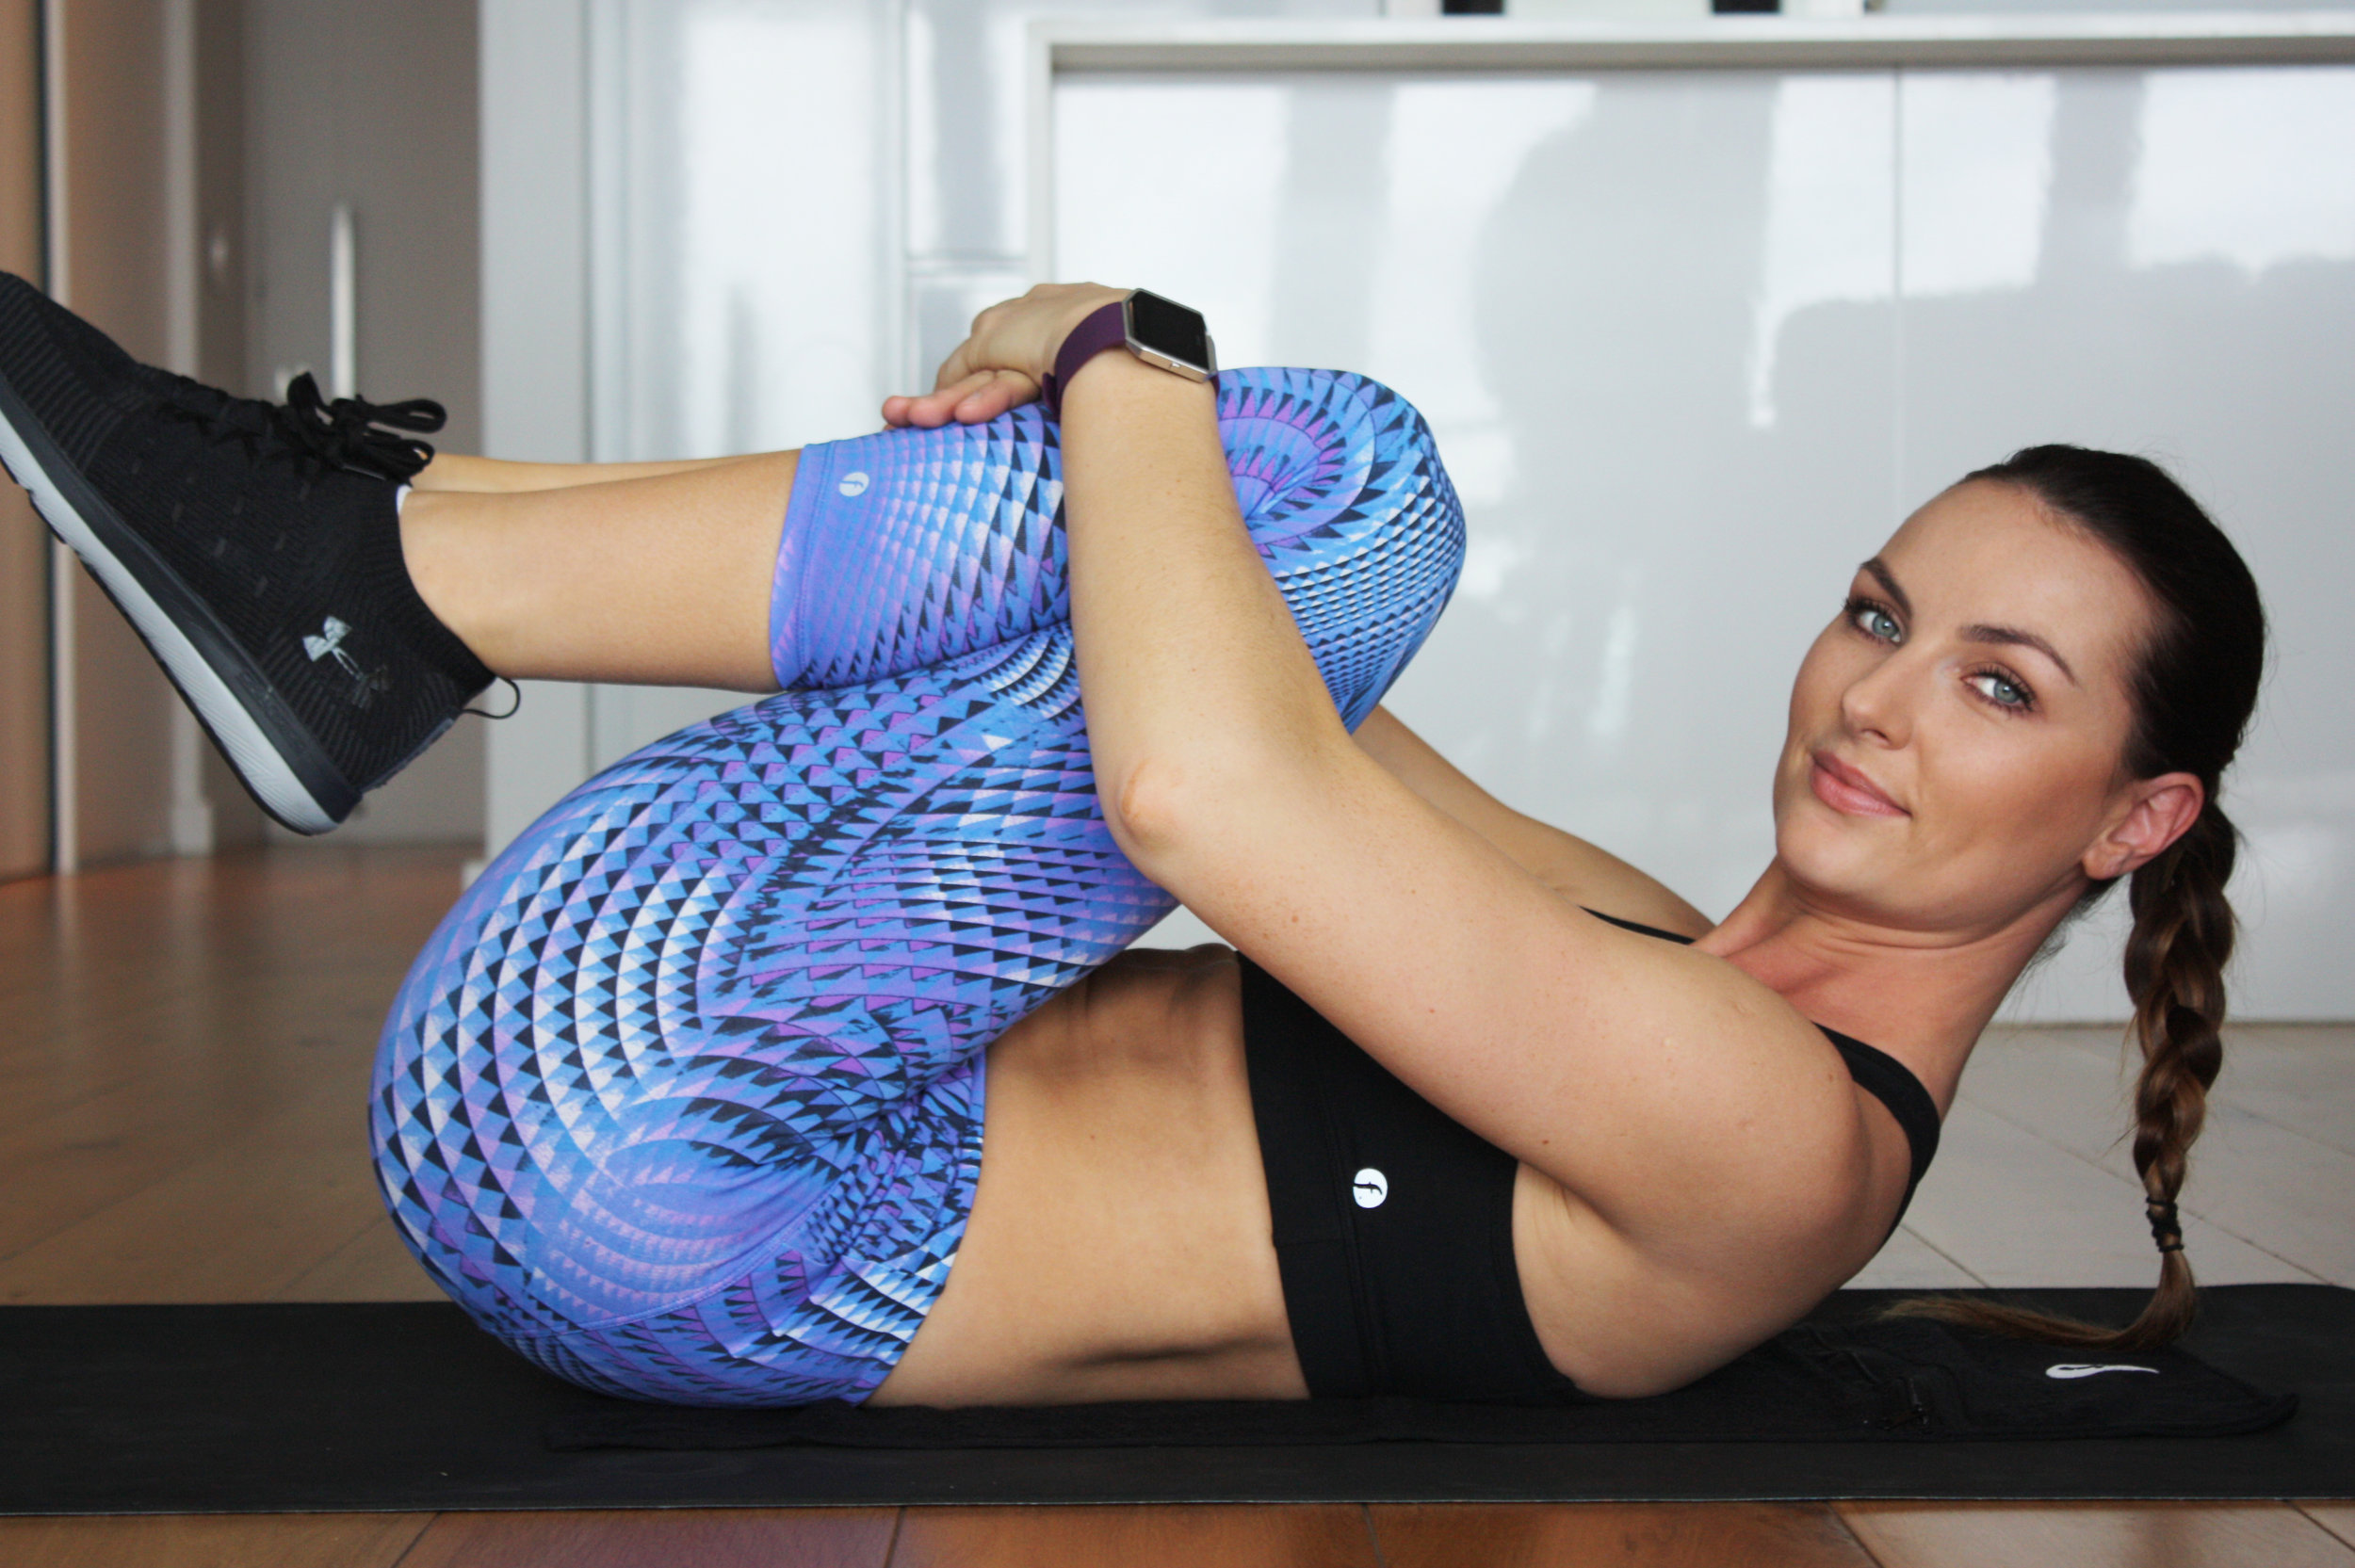 Always stretch before & after a workout - Wearing Fit Gym Wear